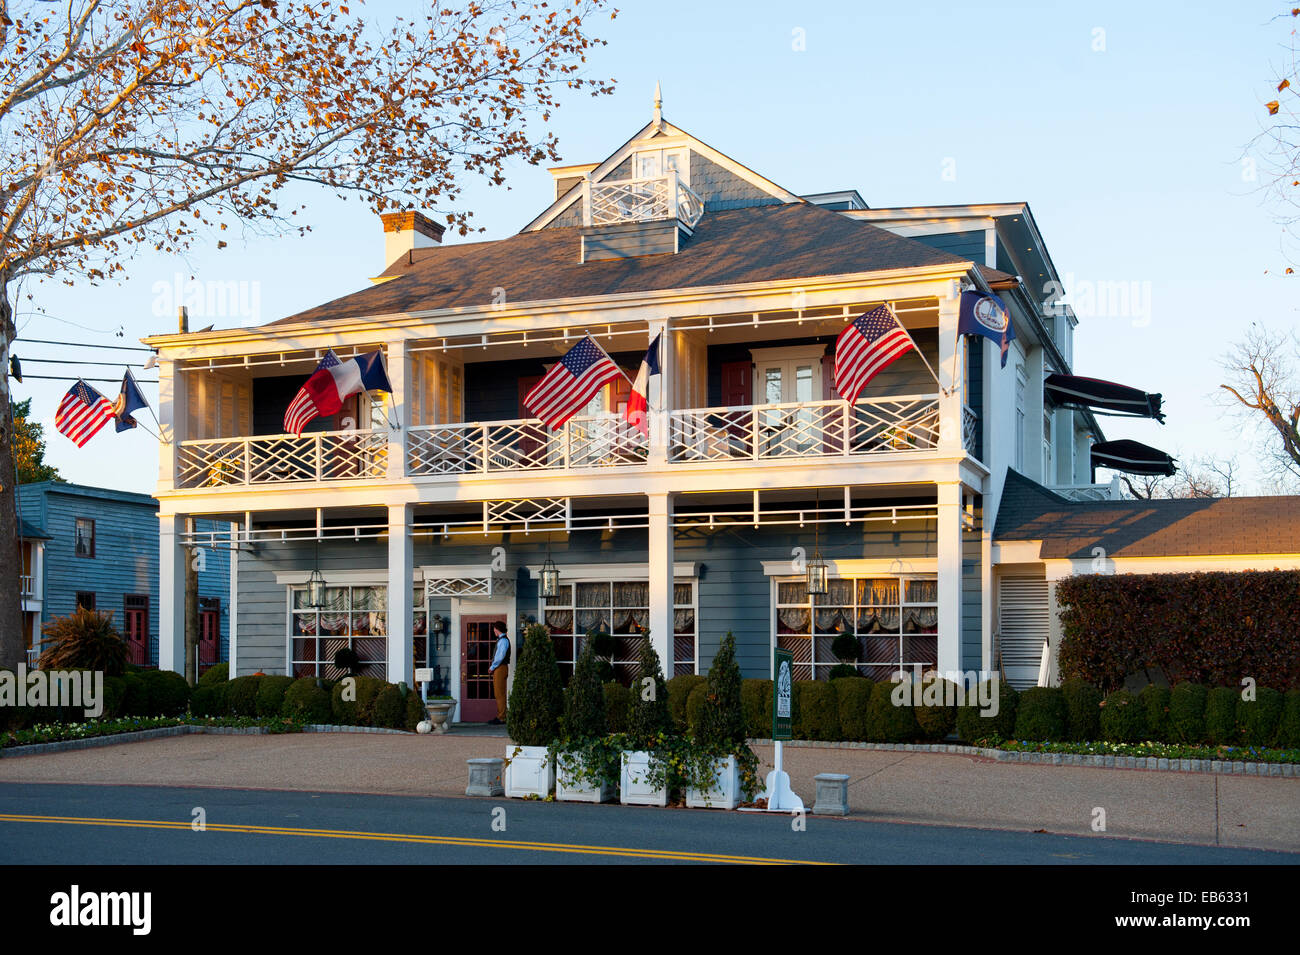 USA Virginia VA Washington Inn at Little Washington a Relais and Chateaux hotel property exterior day - Stock Image